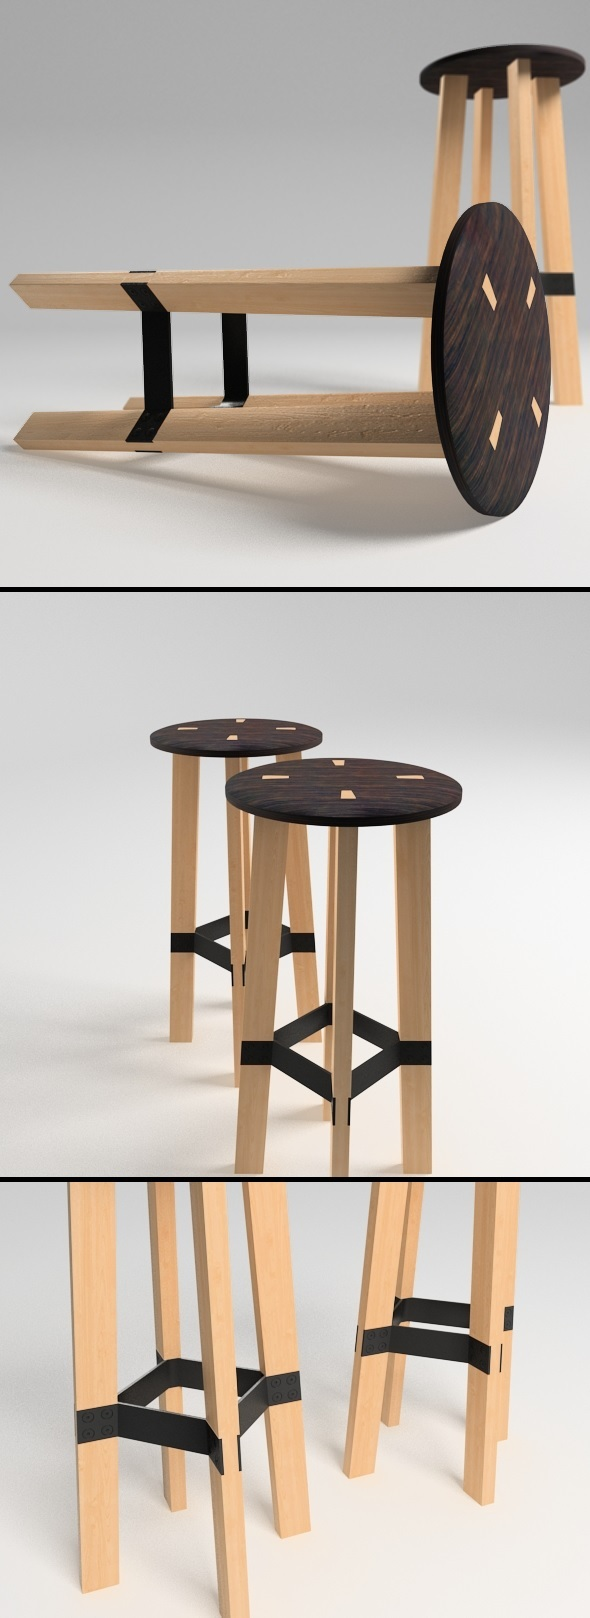 Bar Stool - Contra - 3DOcean Item for Sale